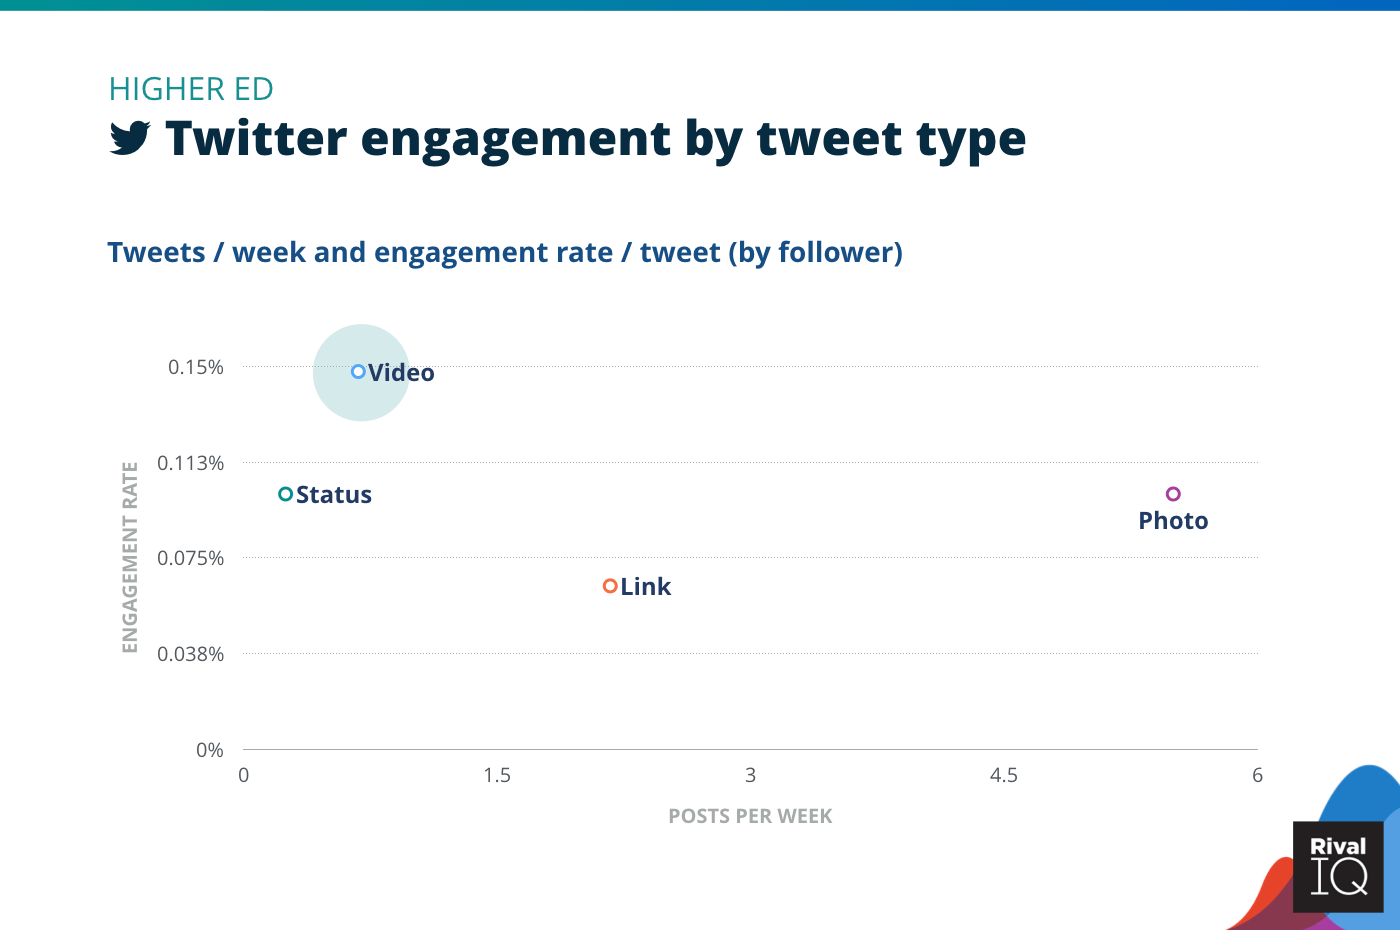 Chart of Twitter posts per week and engagement rate by tweet type, Higher Ed